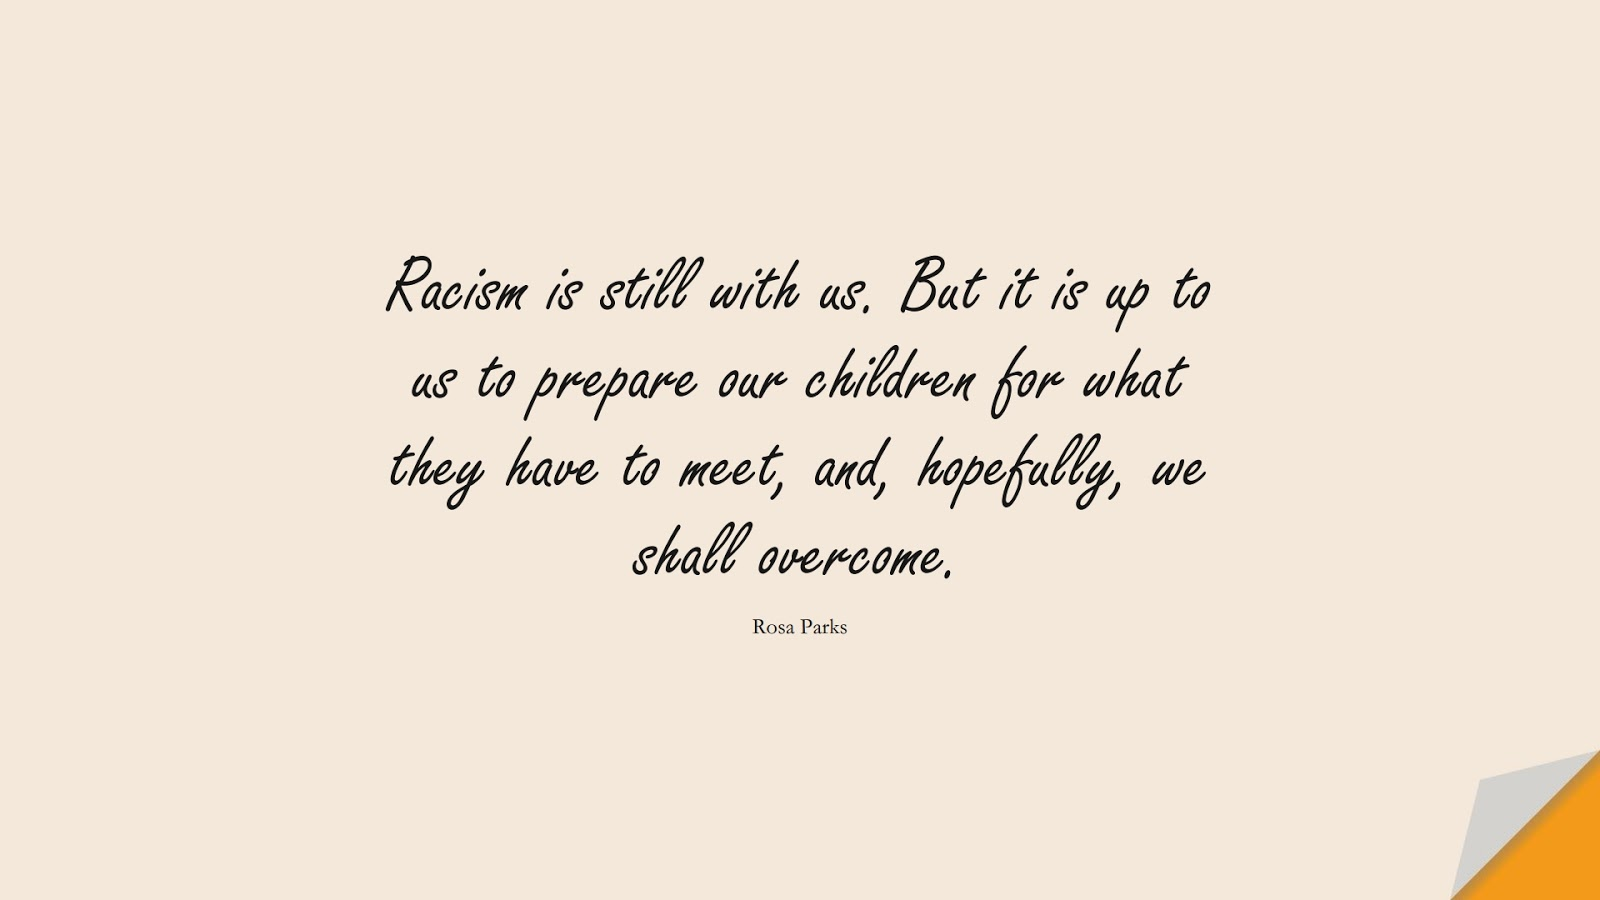 Racism is still with us. But it is up to us to prepare our children for what they have to meet, and, hopefully, we shall overcome. (Rosa Parks);  #HumanityQuotes